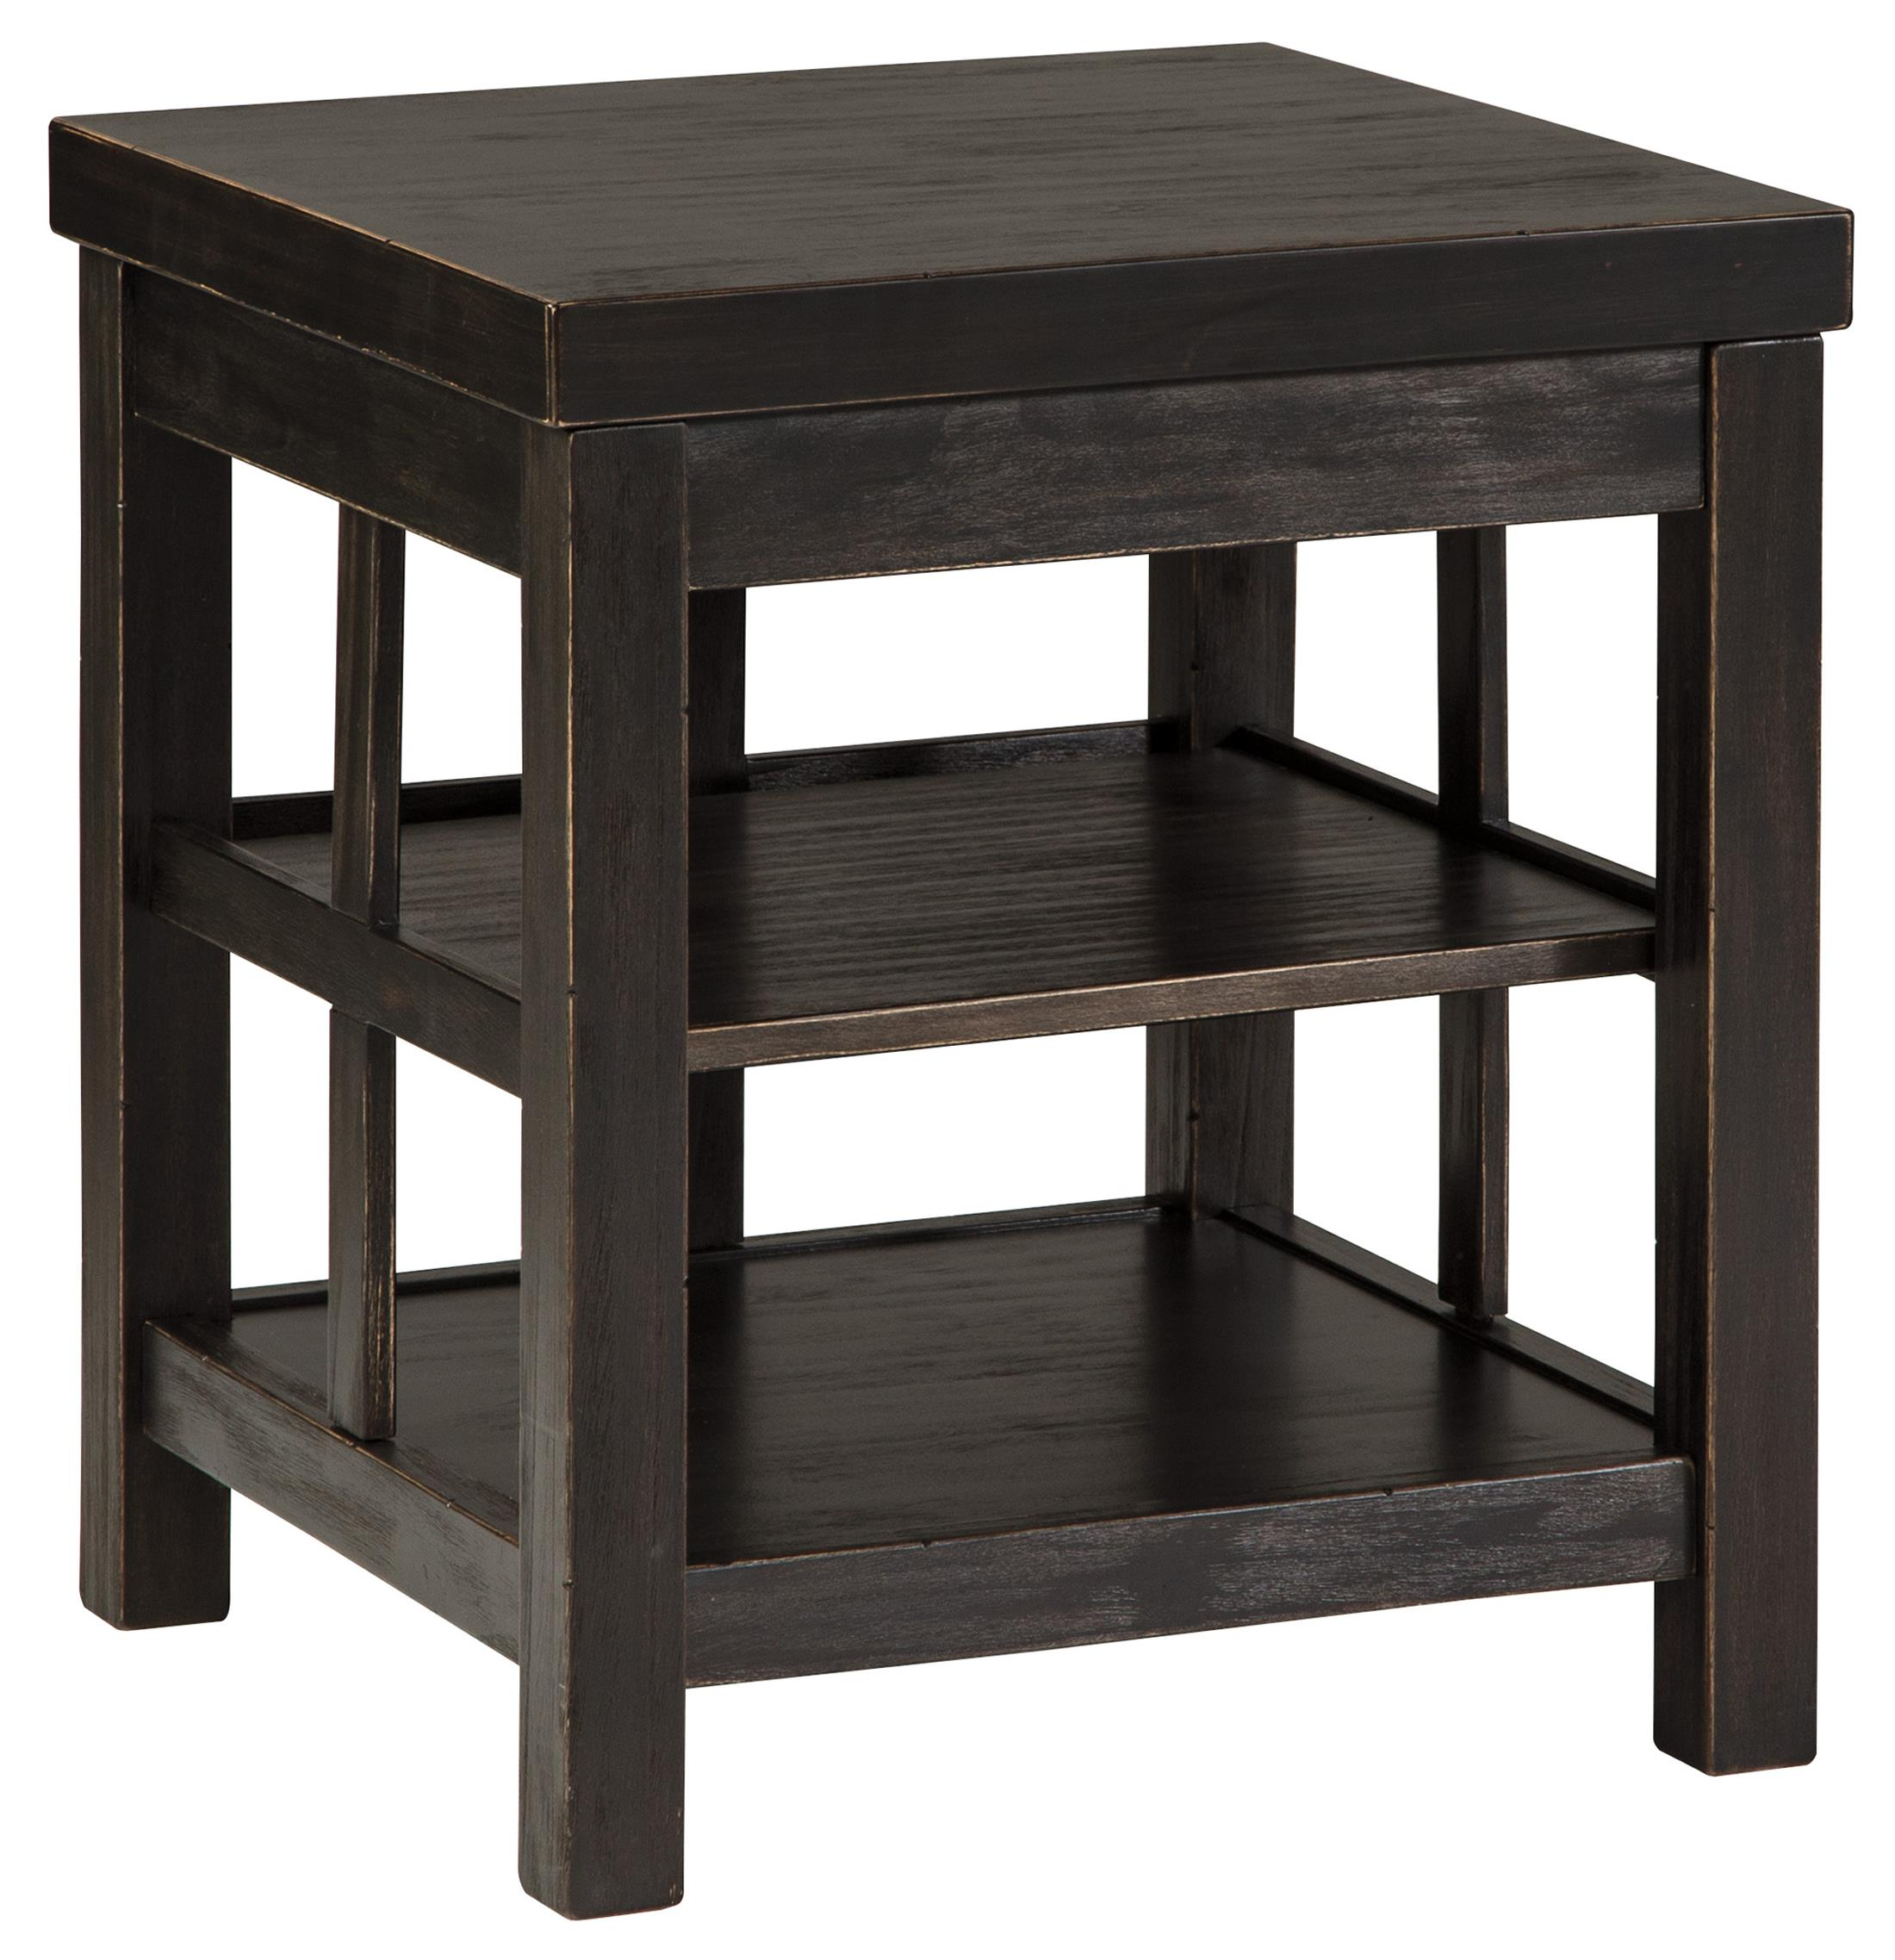 Ashley Furniture Distressed Coffee Table: Rustic Distressed Black Square End Table With 2 Shelves By